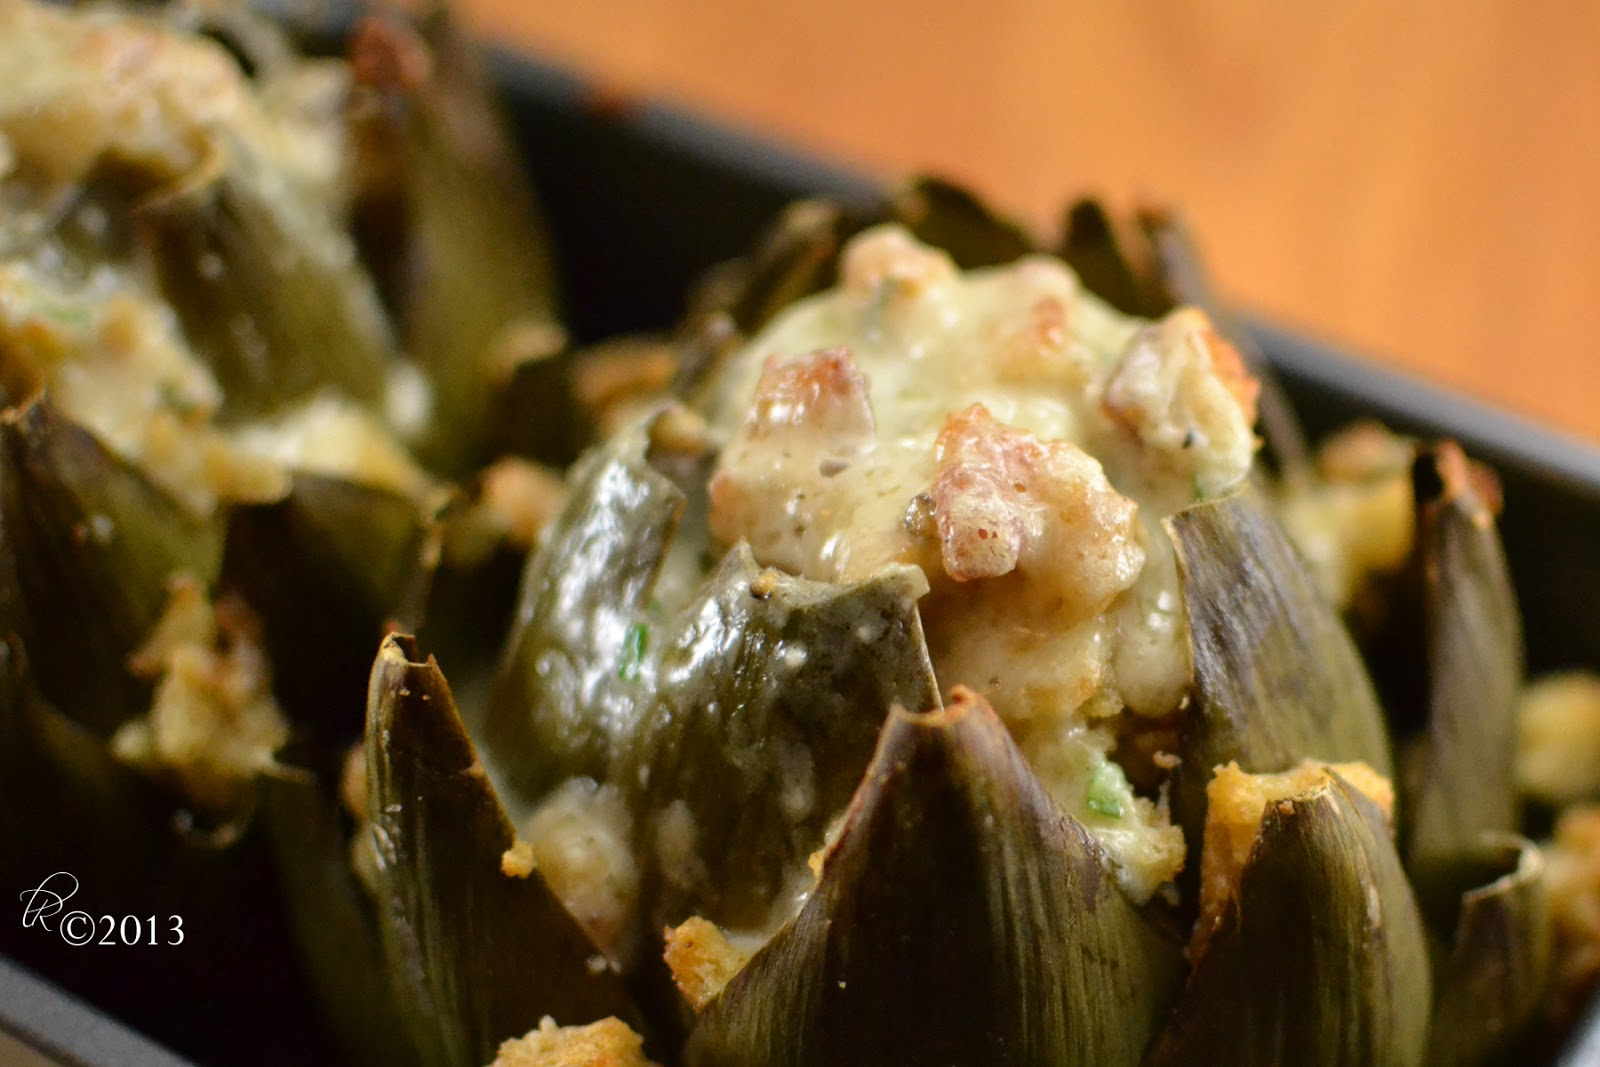 Fromage fort stuffed artichokes